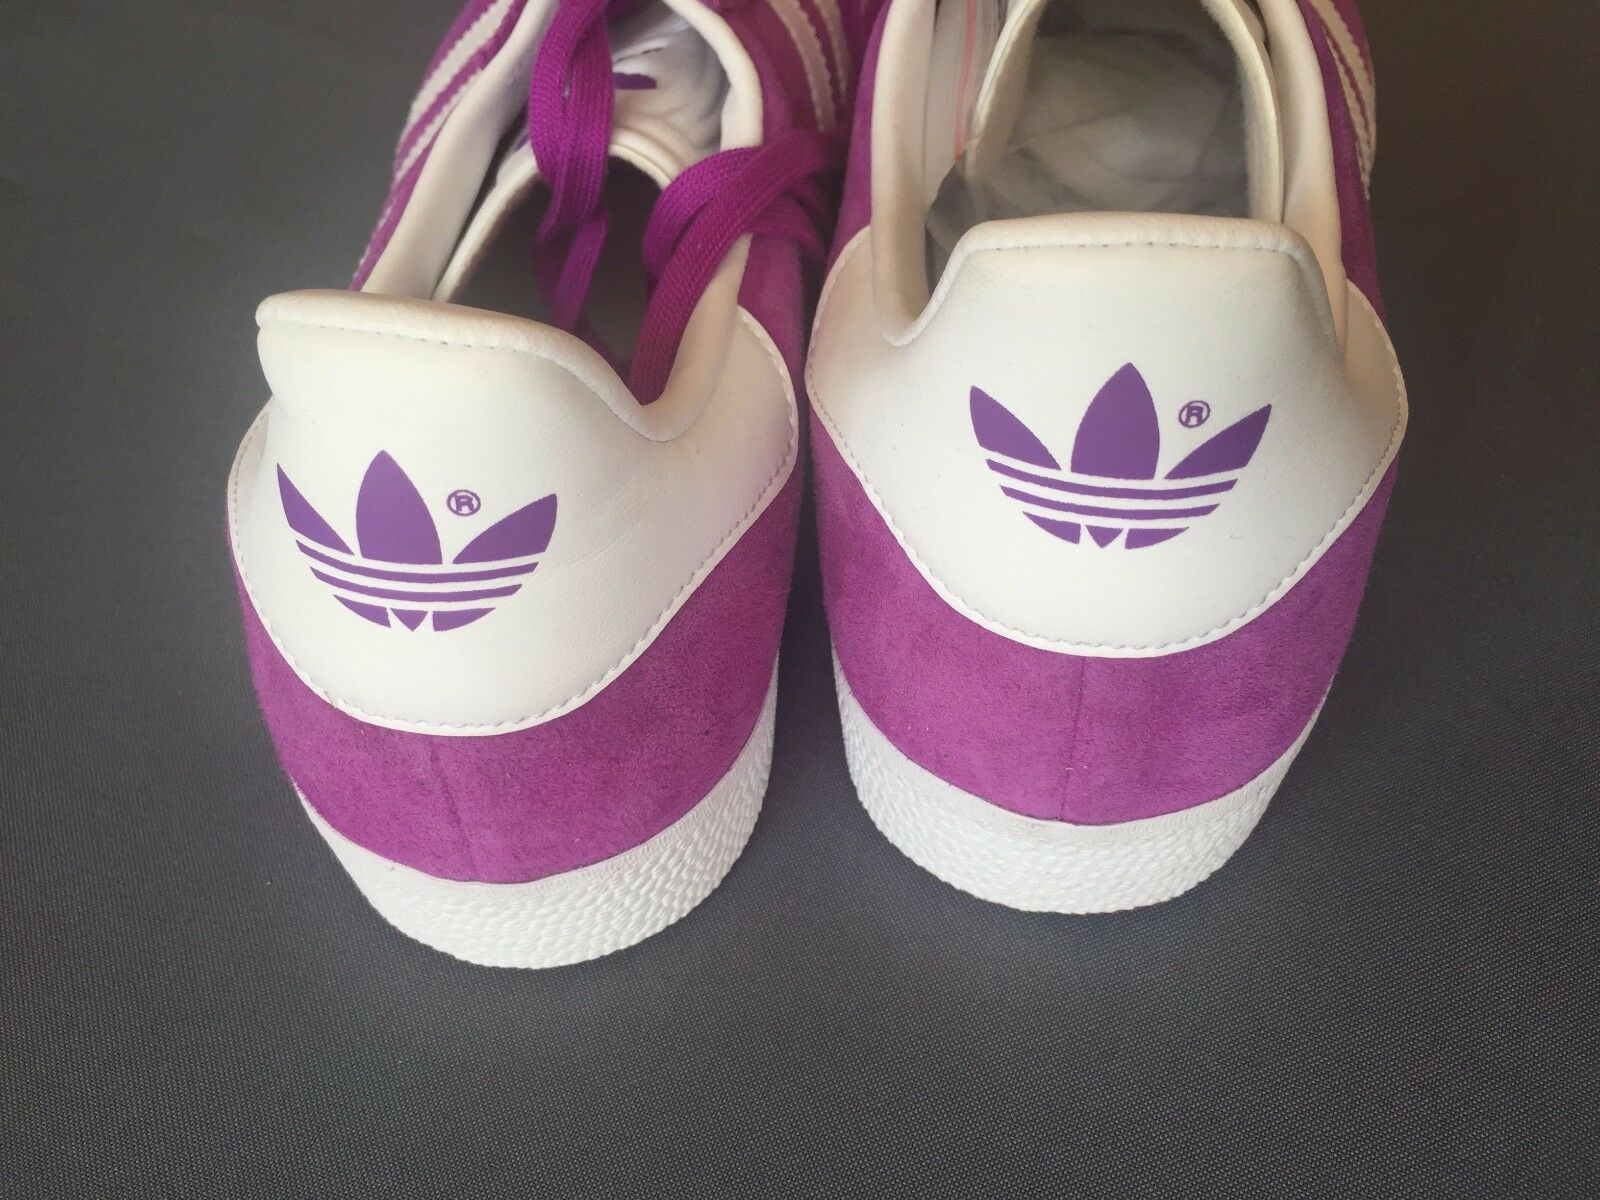 5+ 5 Adidas BB5484 Original Gazelle Purple White Trainers shoes shoes shoes Shock MENS 5635d7